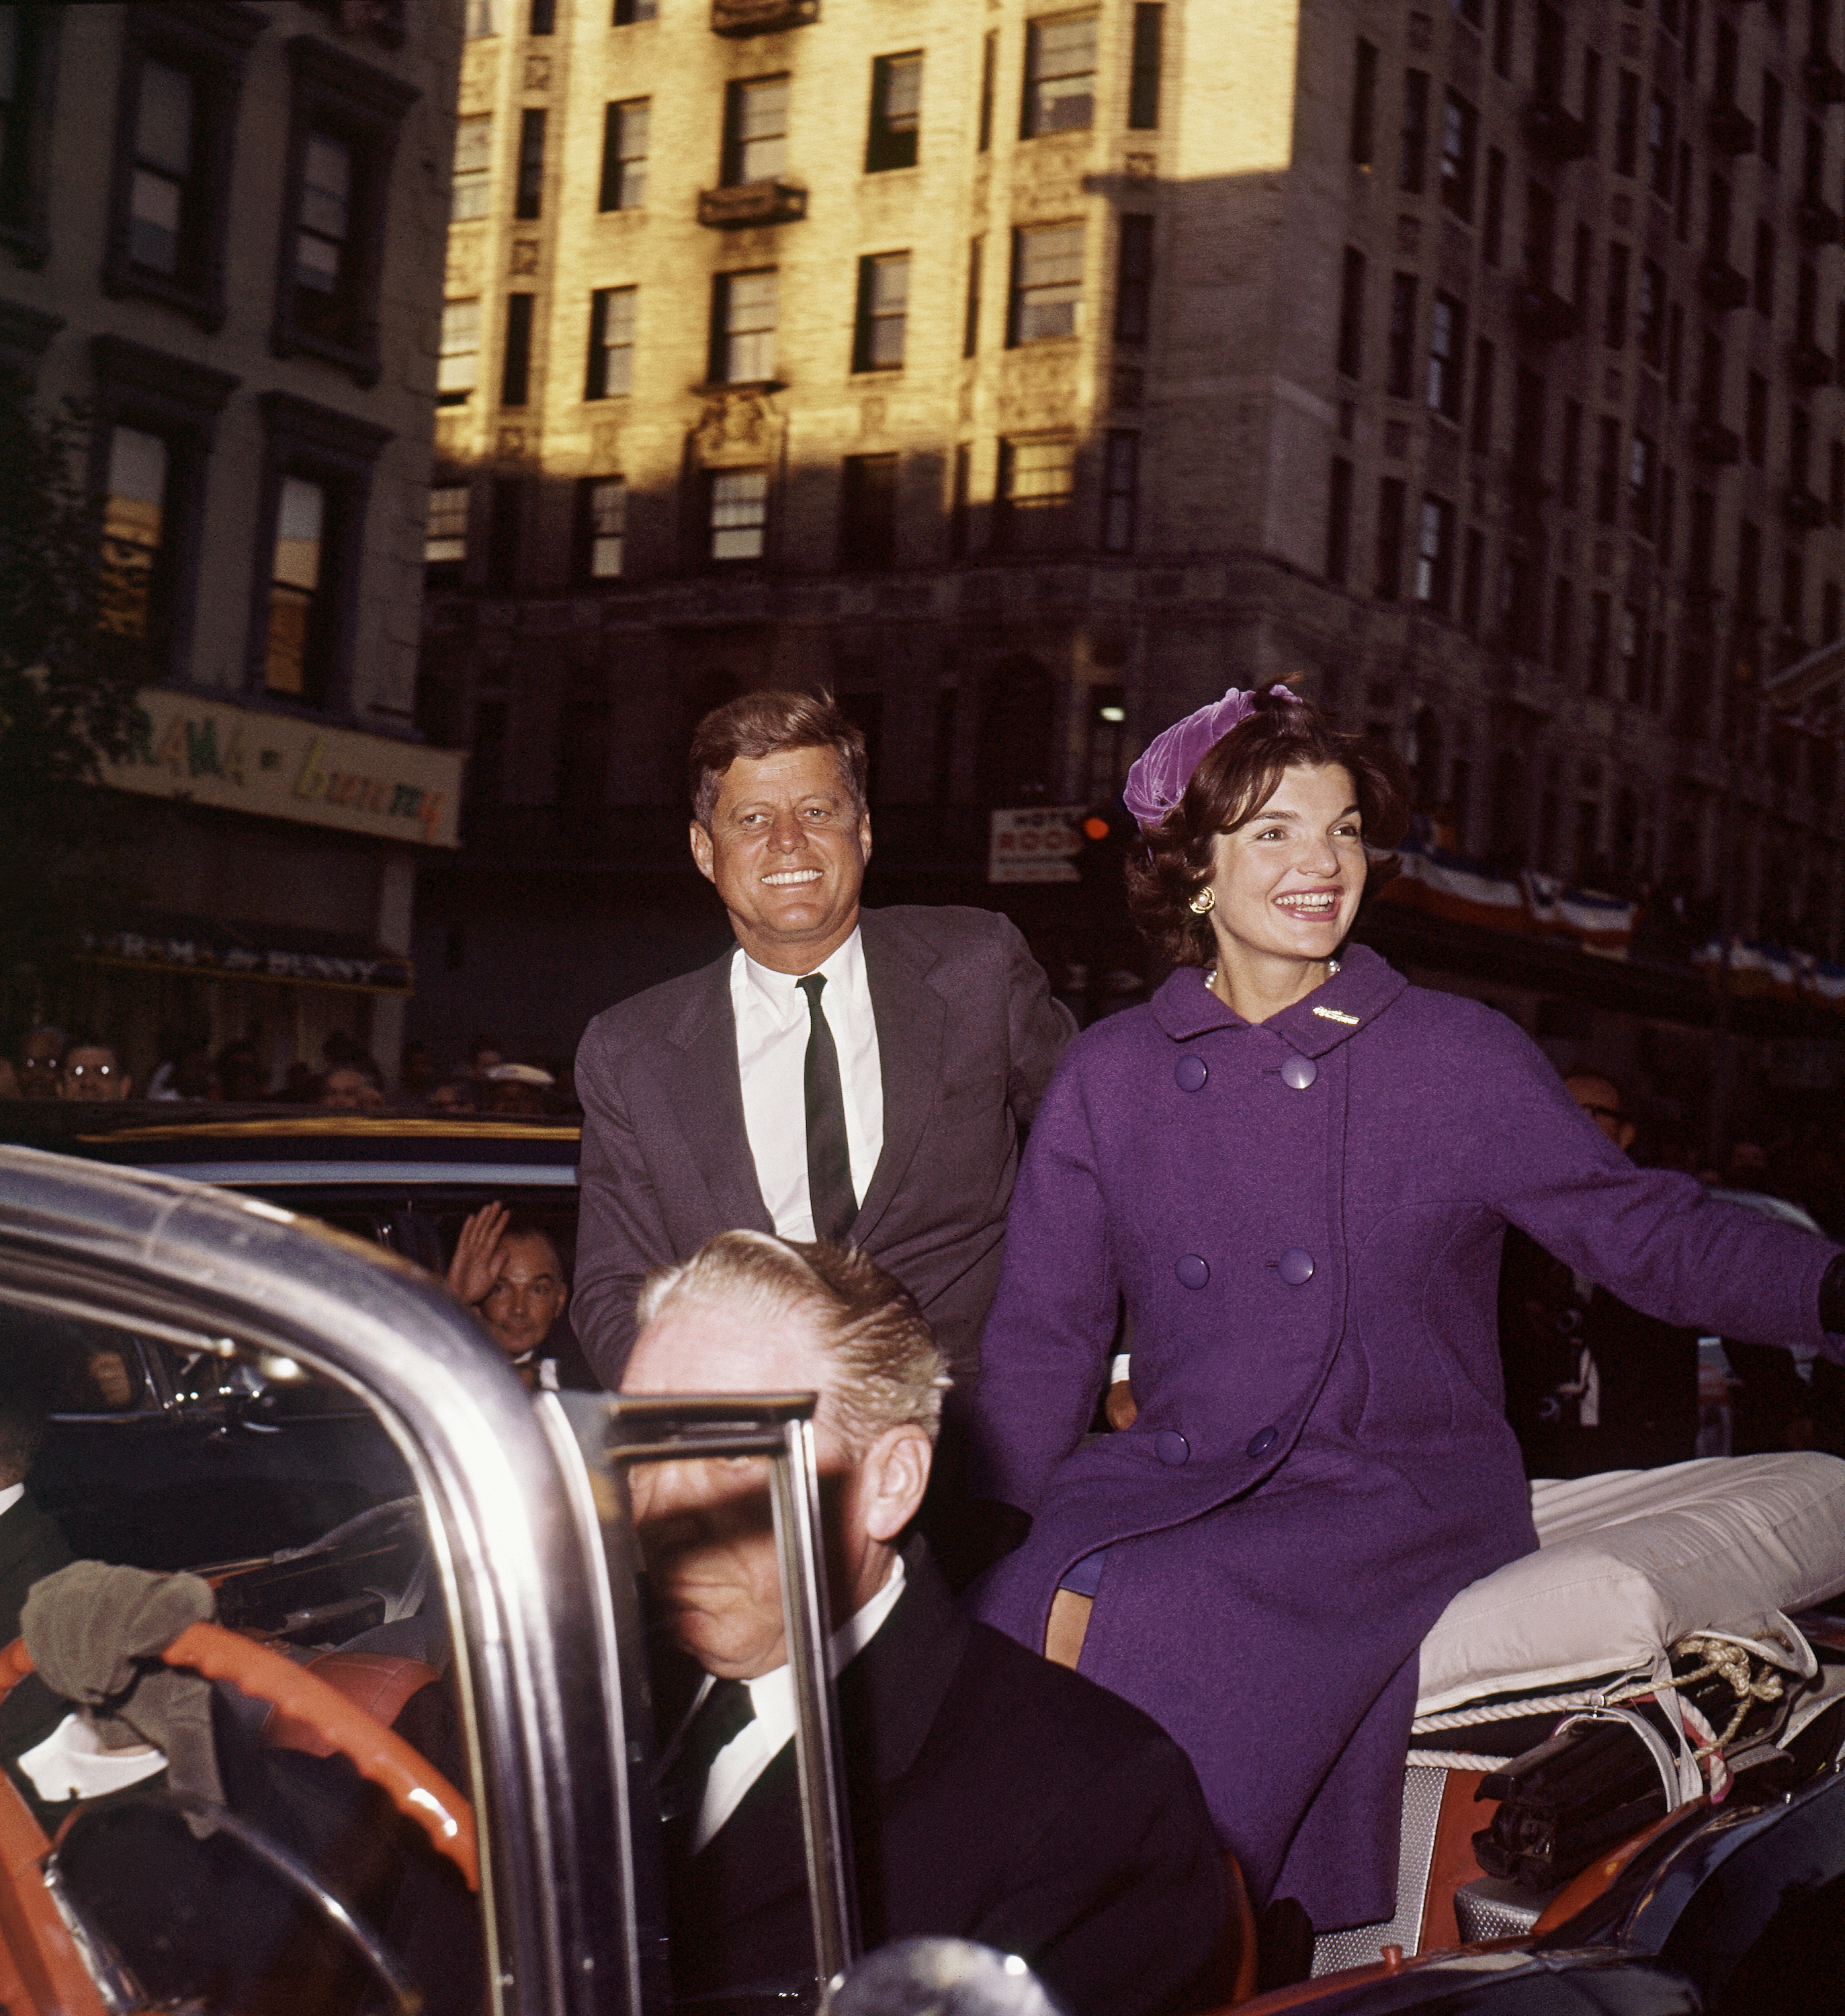 U.S. Senator John F. Kennedy, with wife Jacqueline, campaign in New York City sitting on the back seat of an open car, October 1960. Sen. Kennedy is the Democratic presidential candidate. (AP Photo)